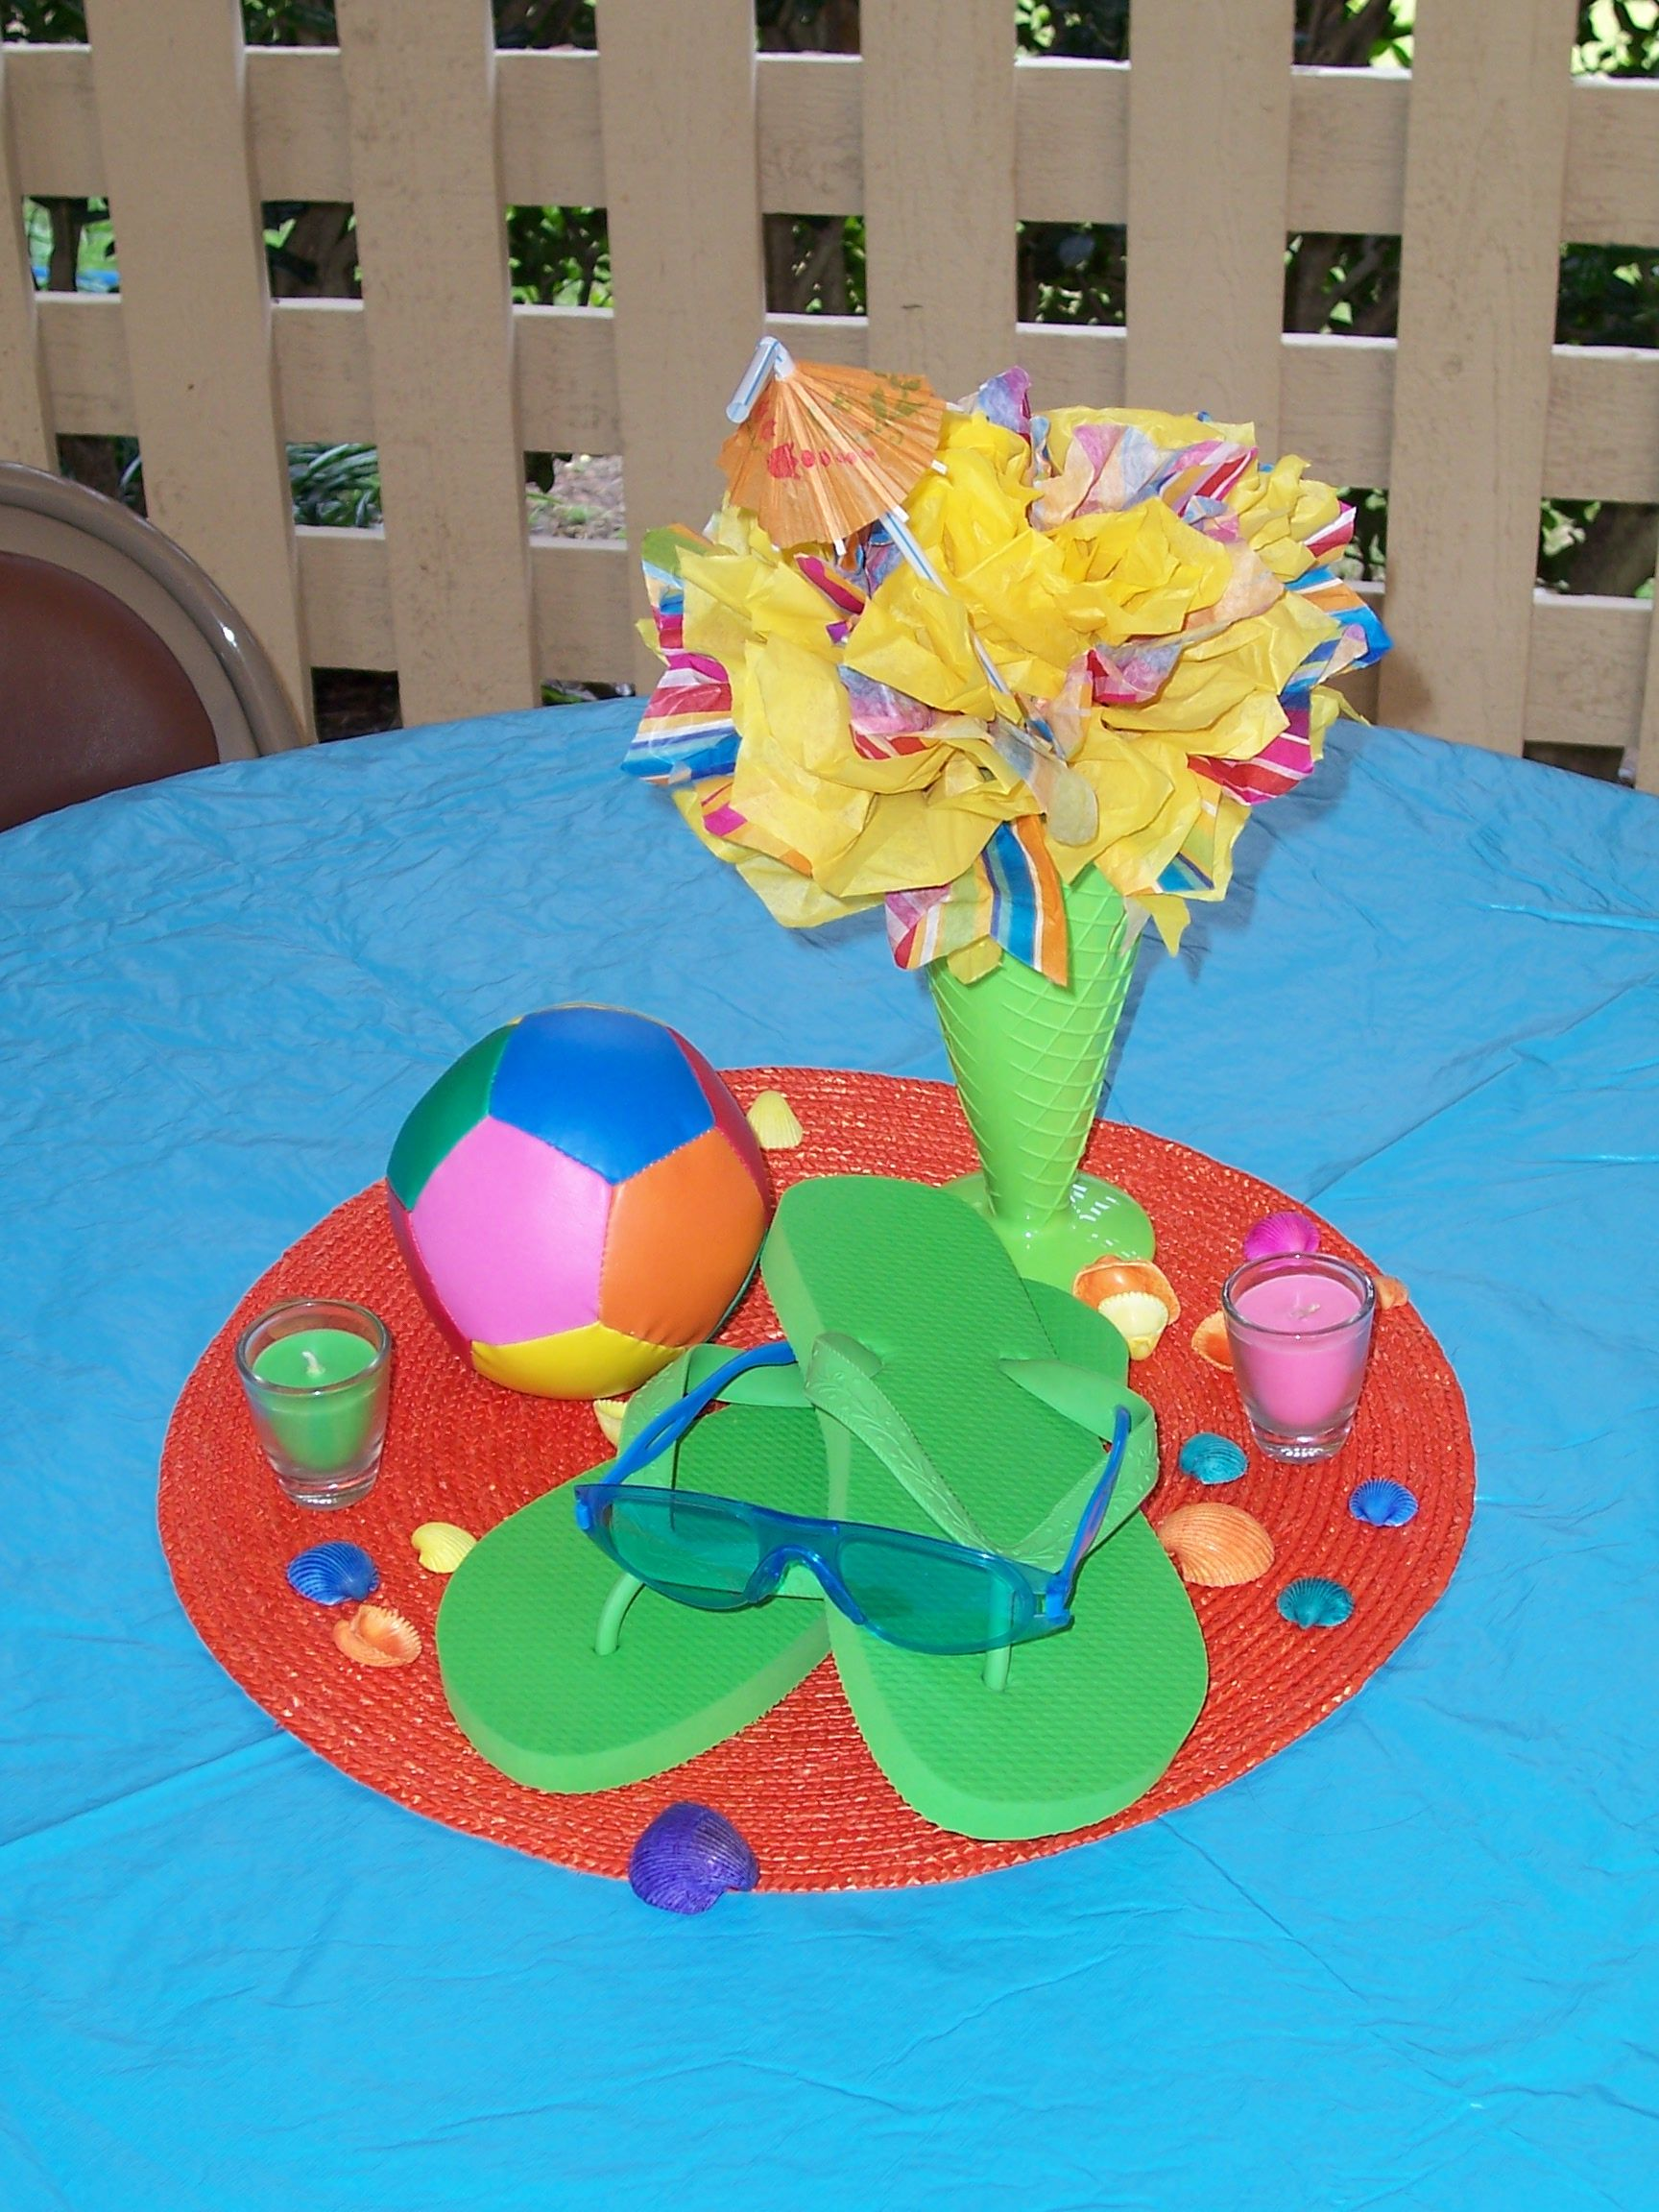 Pool Party Centerpiece Ideas kids pool party decorations Pool Party Centerpiece